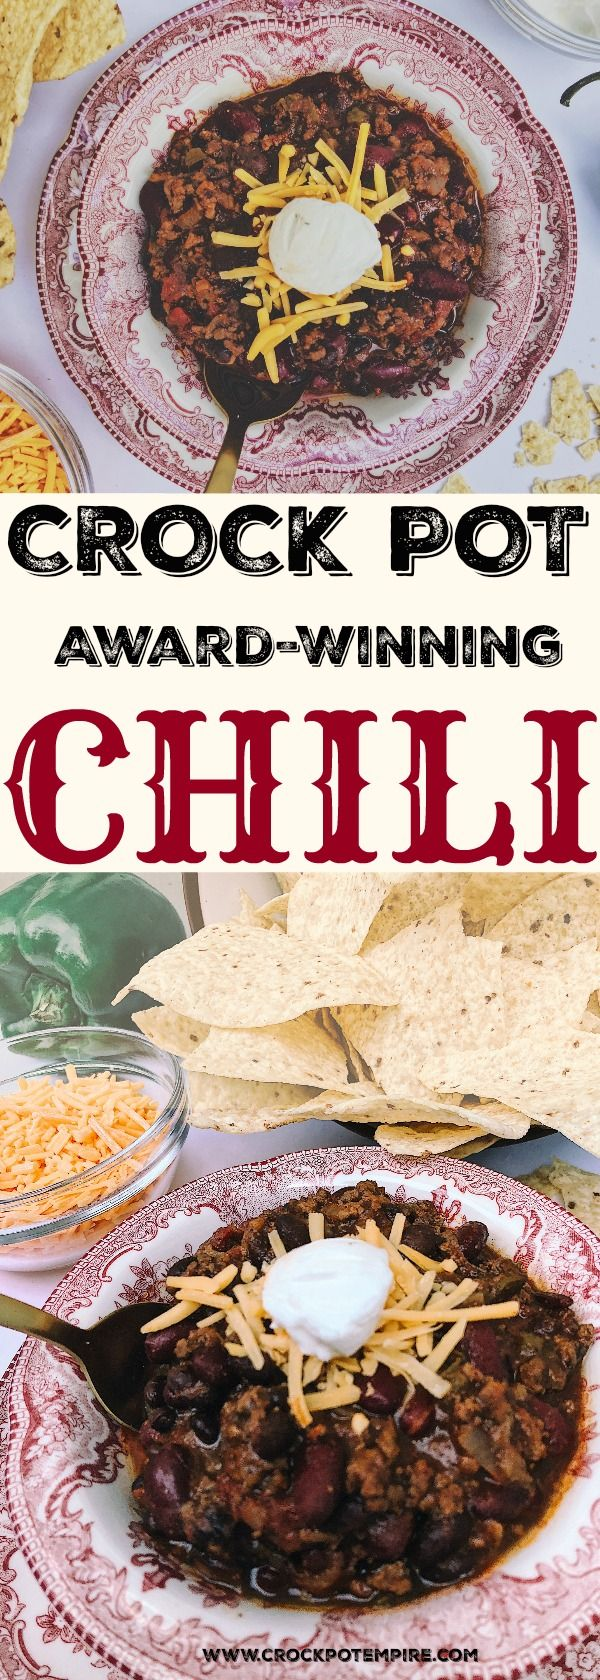 25 B 228 Sta Award Winning Chili Id 233 Erna P 229 Pinterest Texas